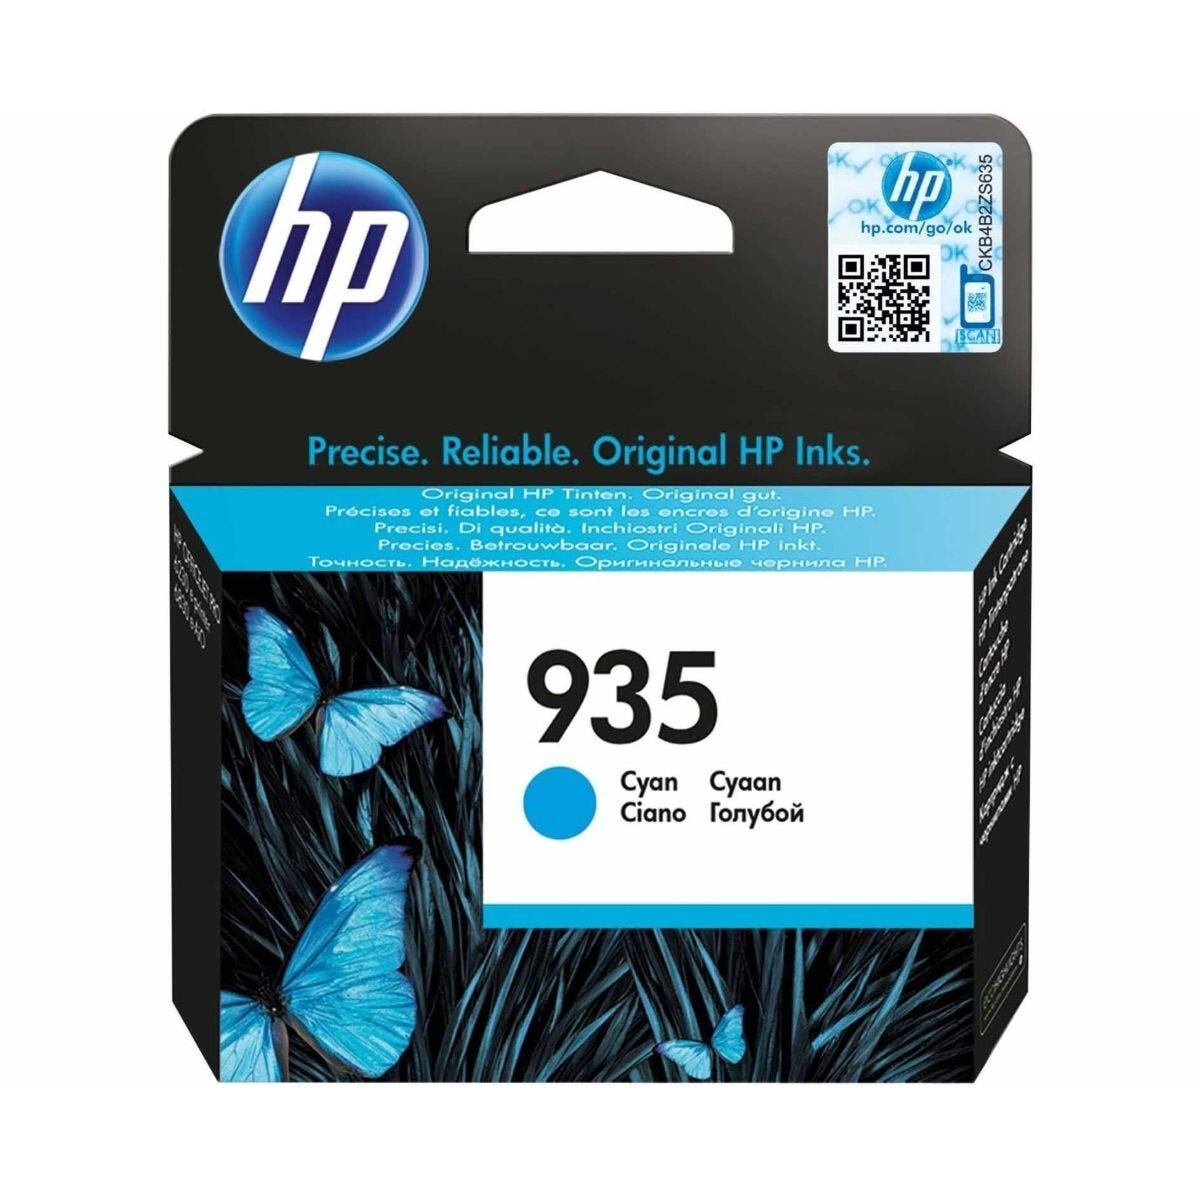 HP 935 Ink Cartridge Cyan